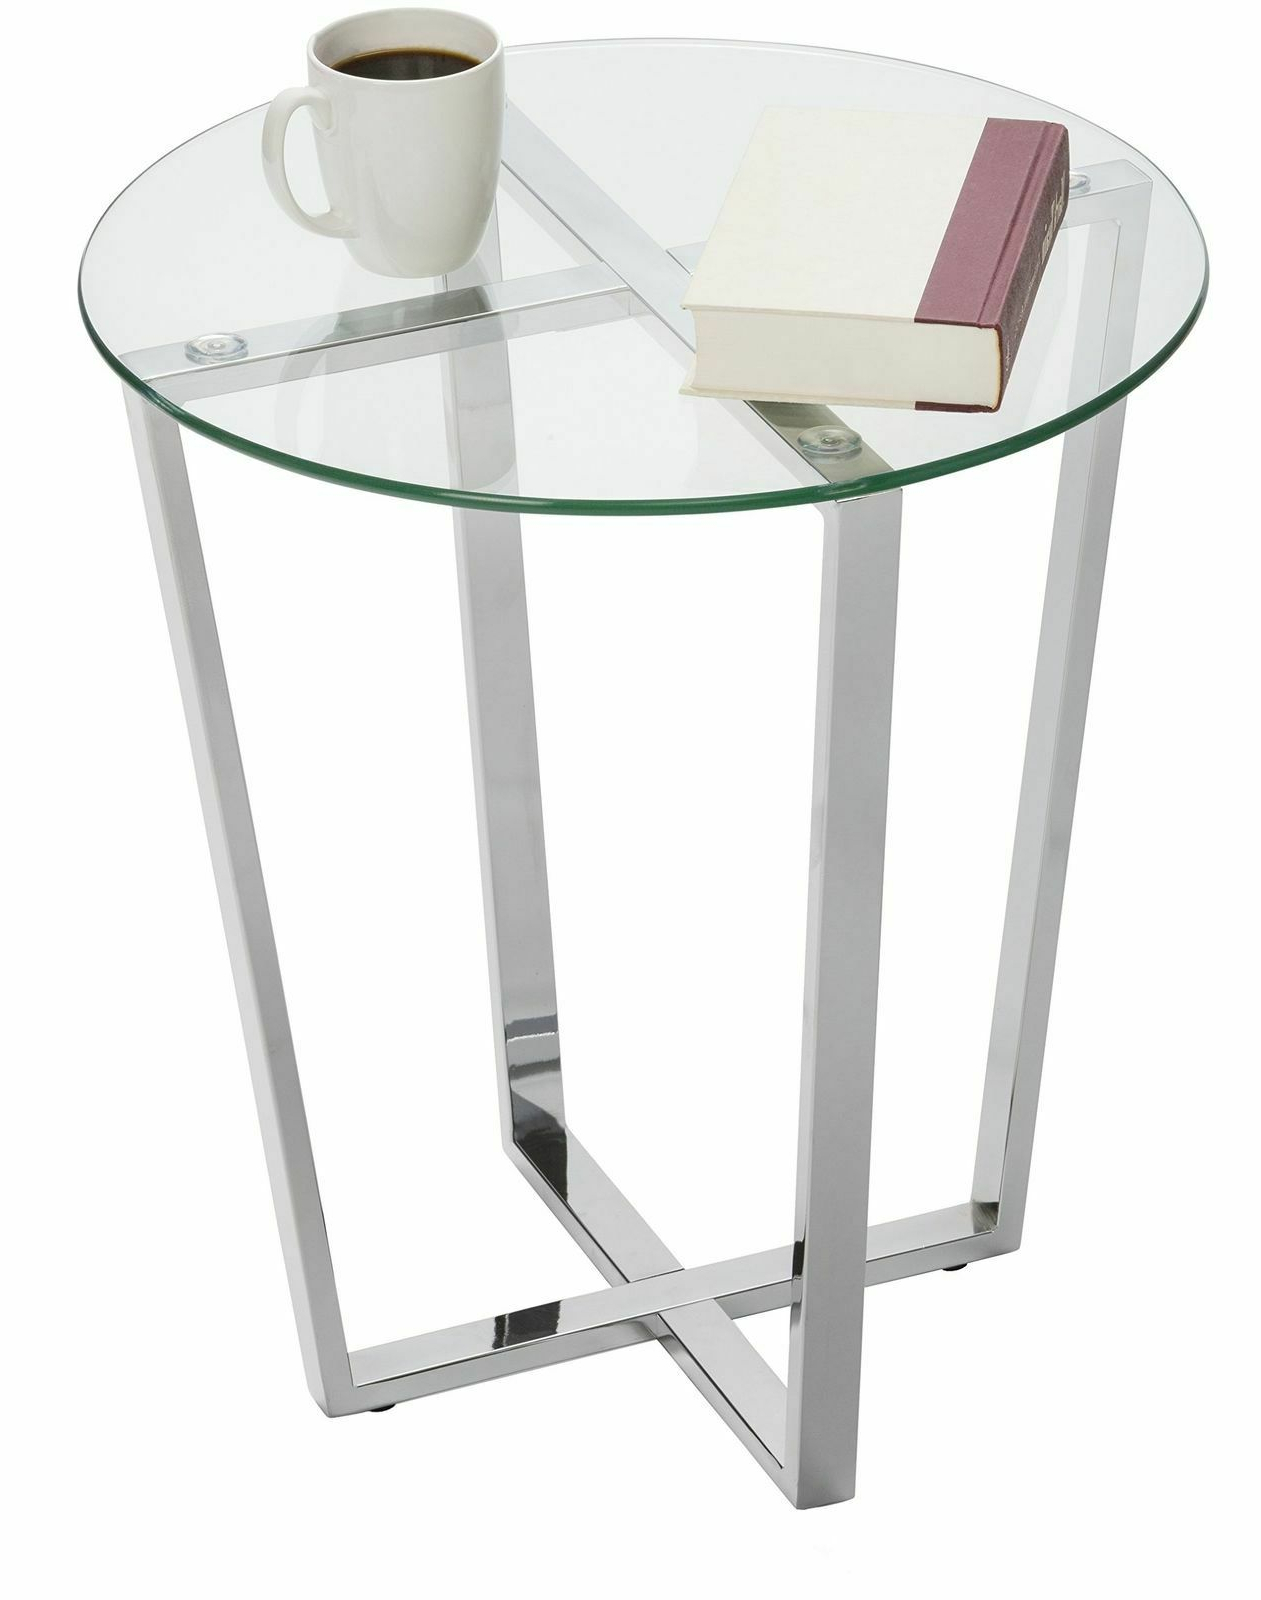 2019 Silver Orchid Bardeen Round Coffee Tables With Mango Steam Metro Glass End Table – Clear Top/chrome Base (View 17 of 20)